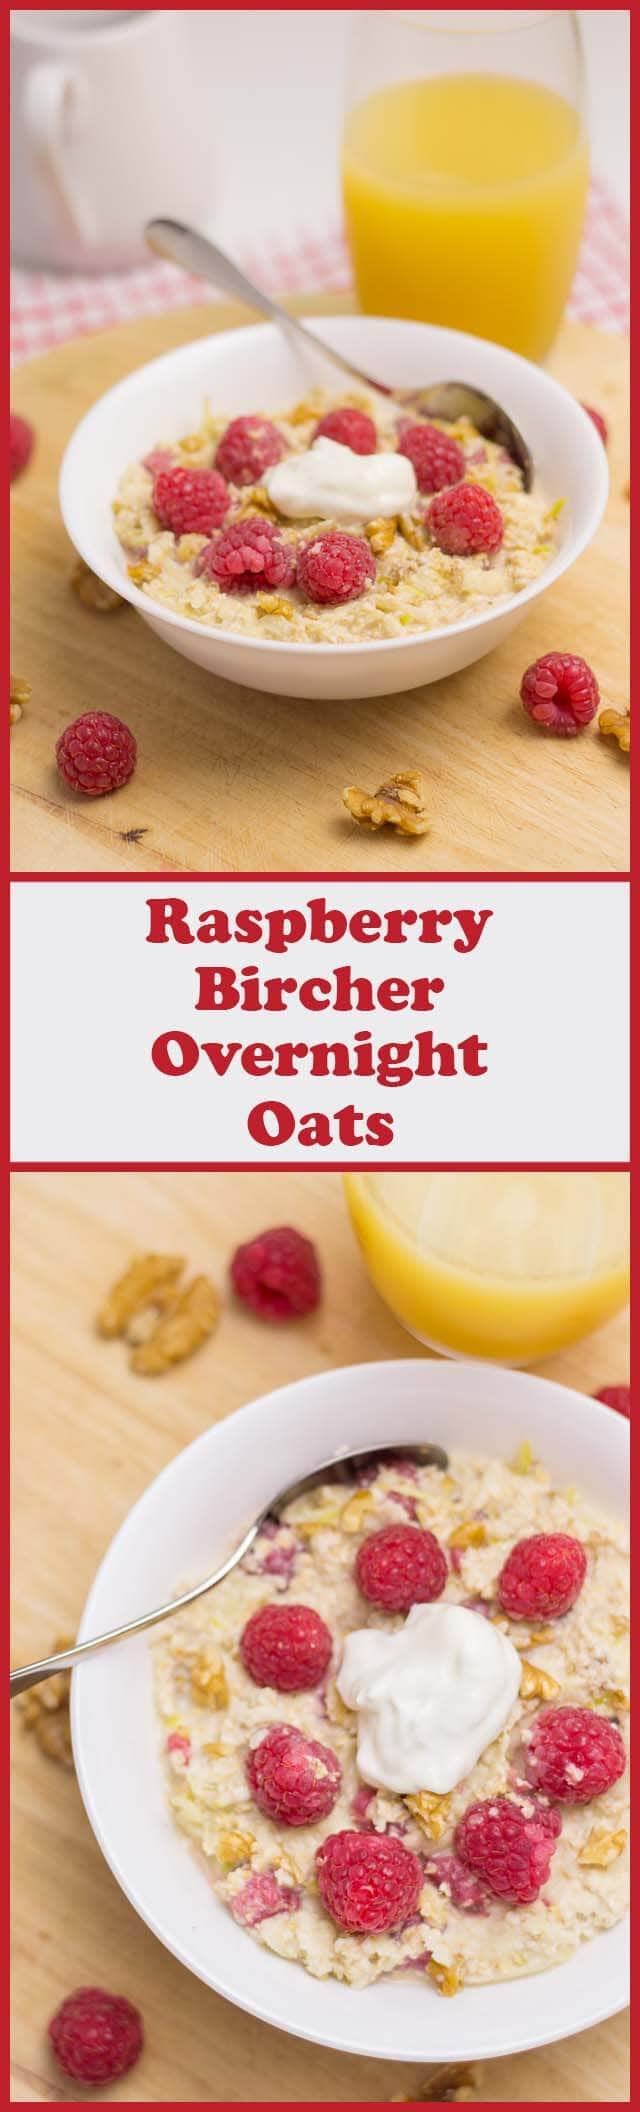 Combine oats, apples, fresh raspberries and walnuts for this deliciously fresh raspberry Bircher overnight oats breakfast!